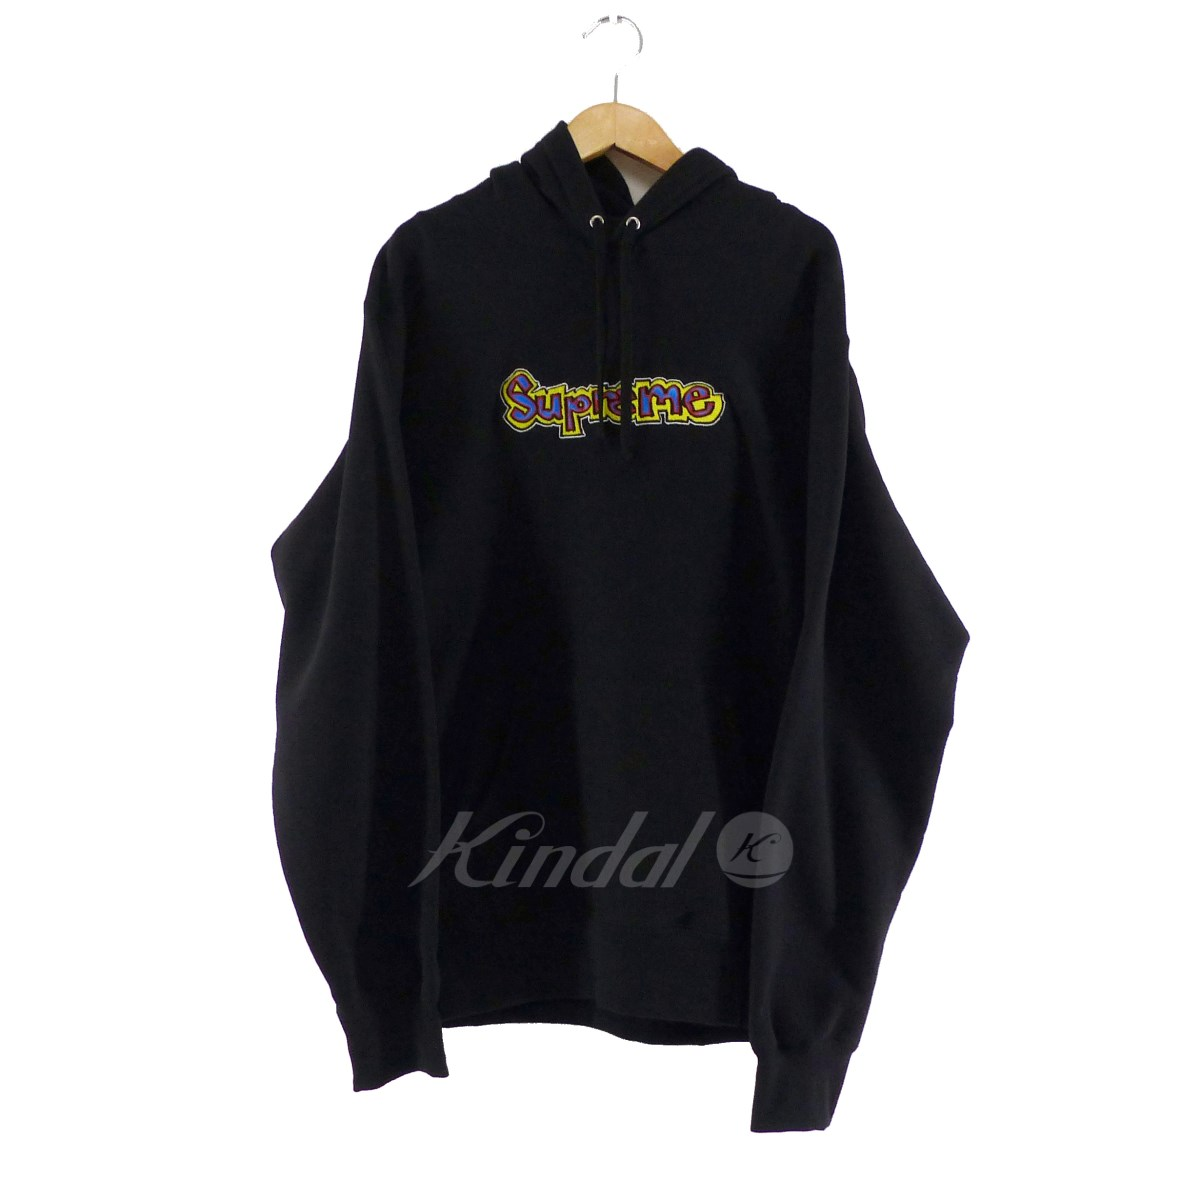 【中古】SUPREME 2018SS Gonz Logo Hooded Sweatshirt 【送料無料】 【096181】 【KIND1550】